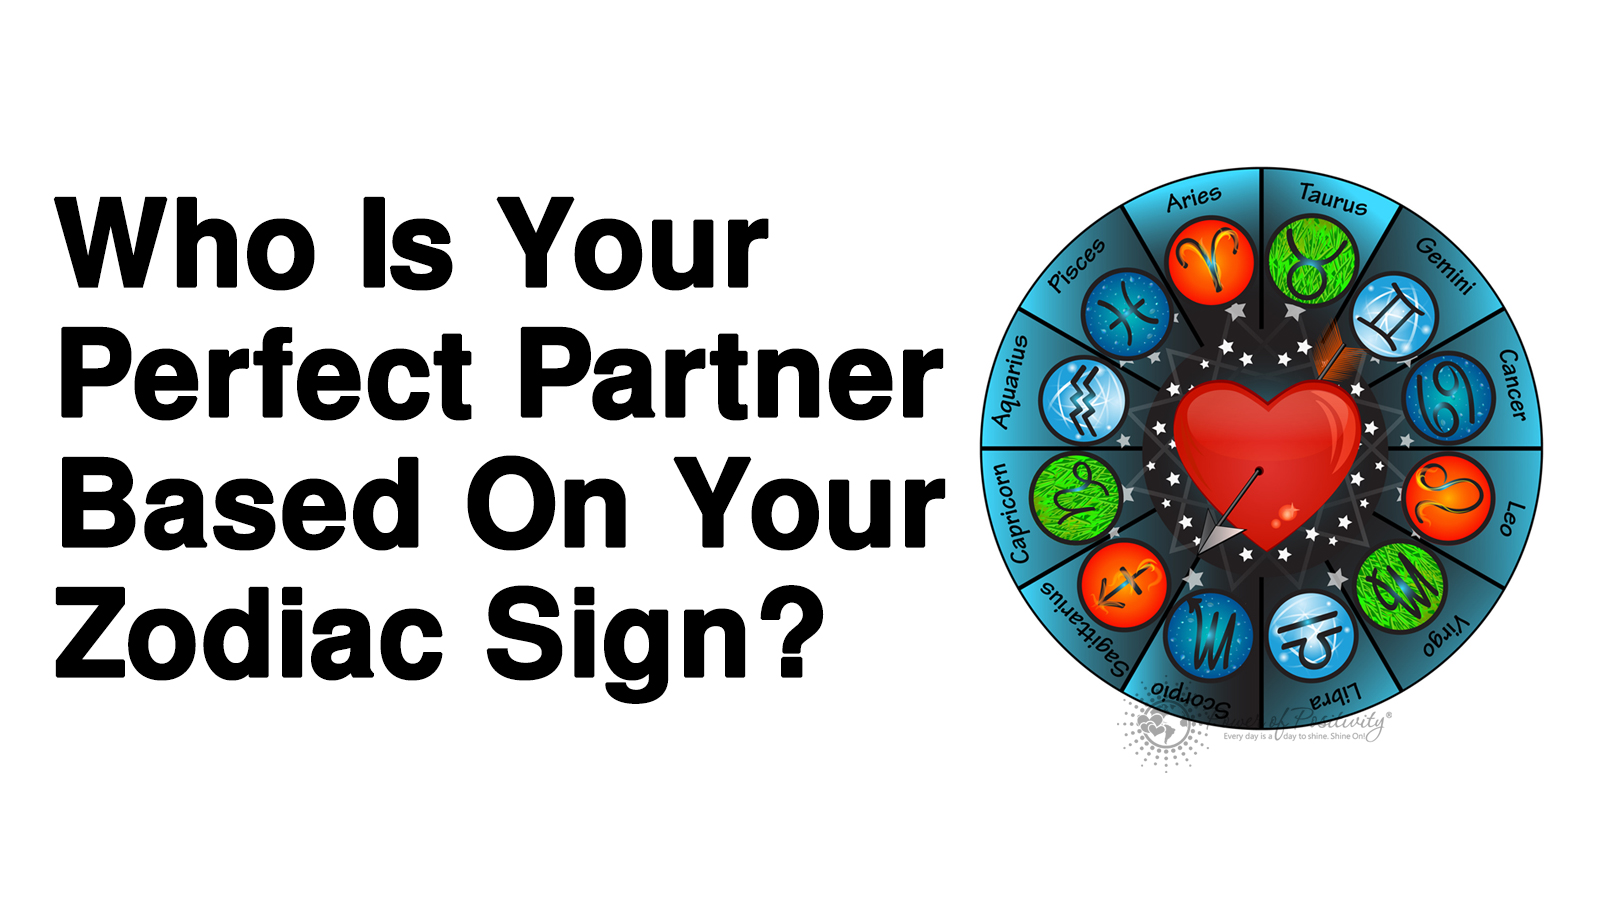 Who Is Your Perfect Partner Based On Your Zodiac Sign